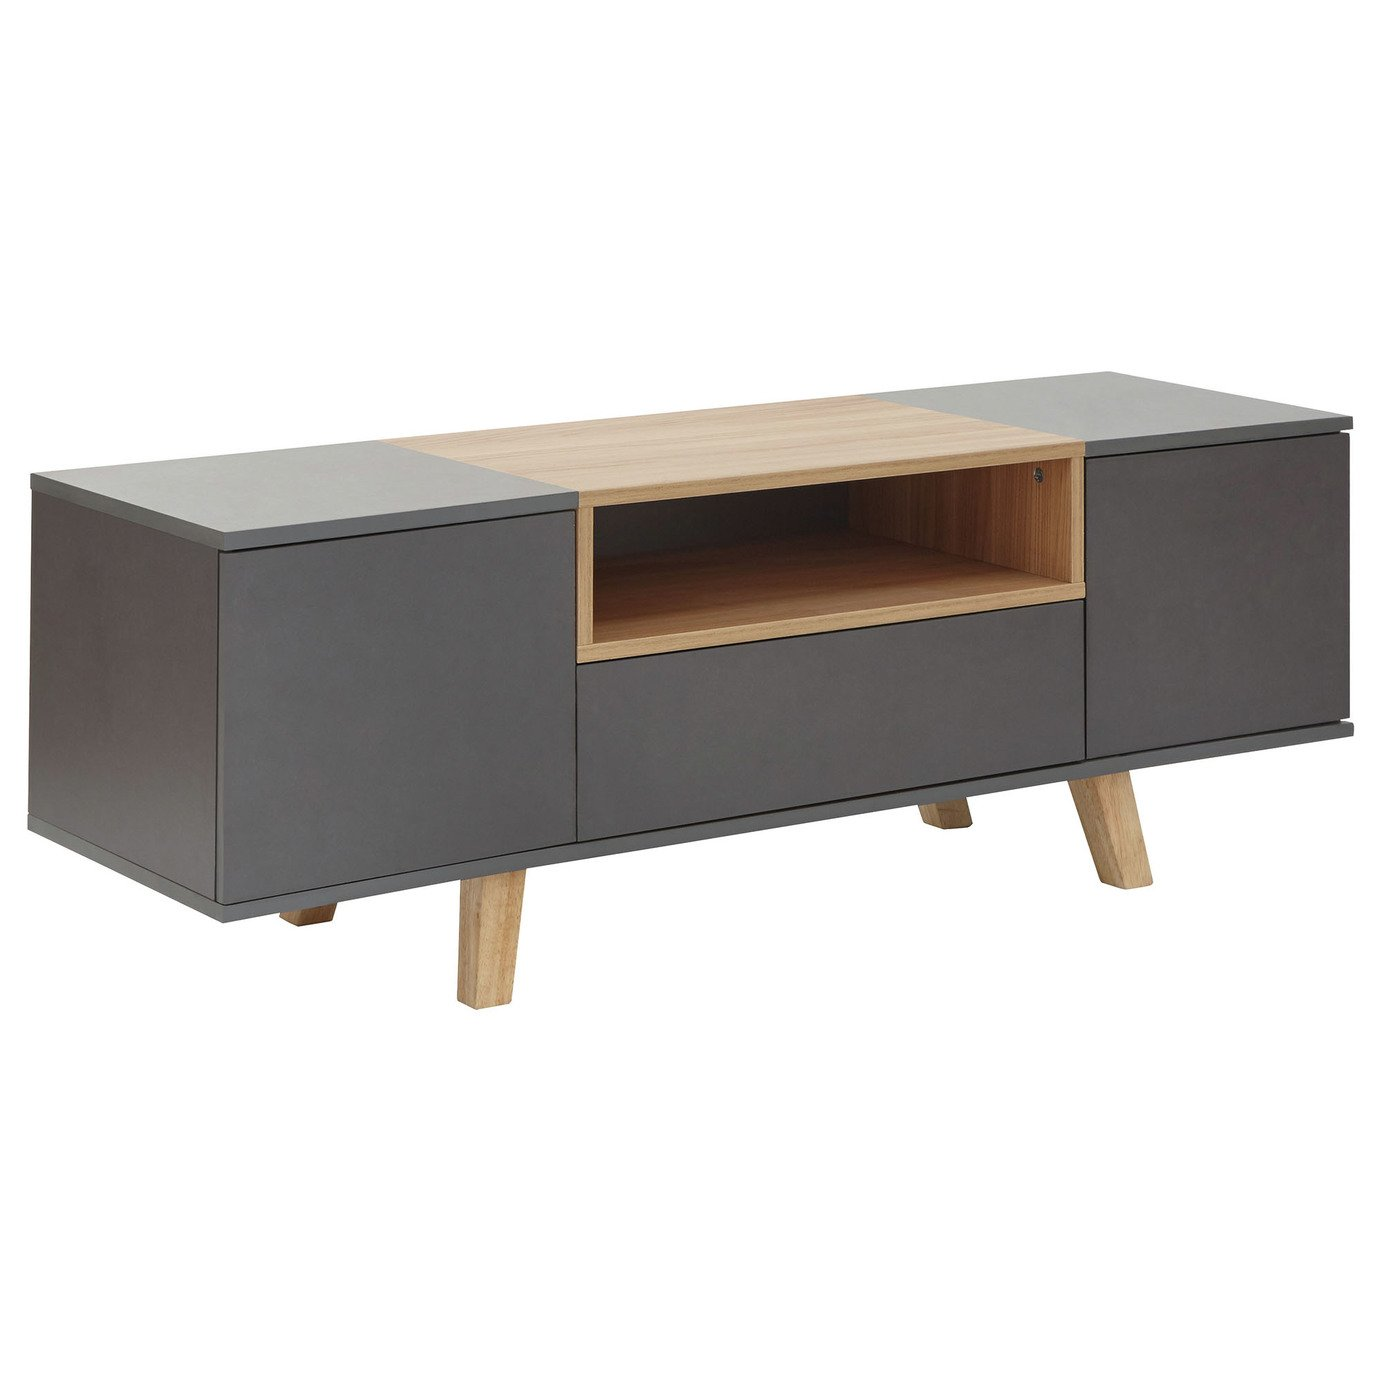 Modena 2 Door 1 Drawer TV Unit - Grey